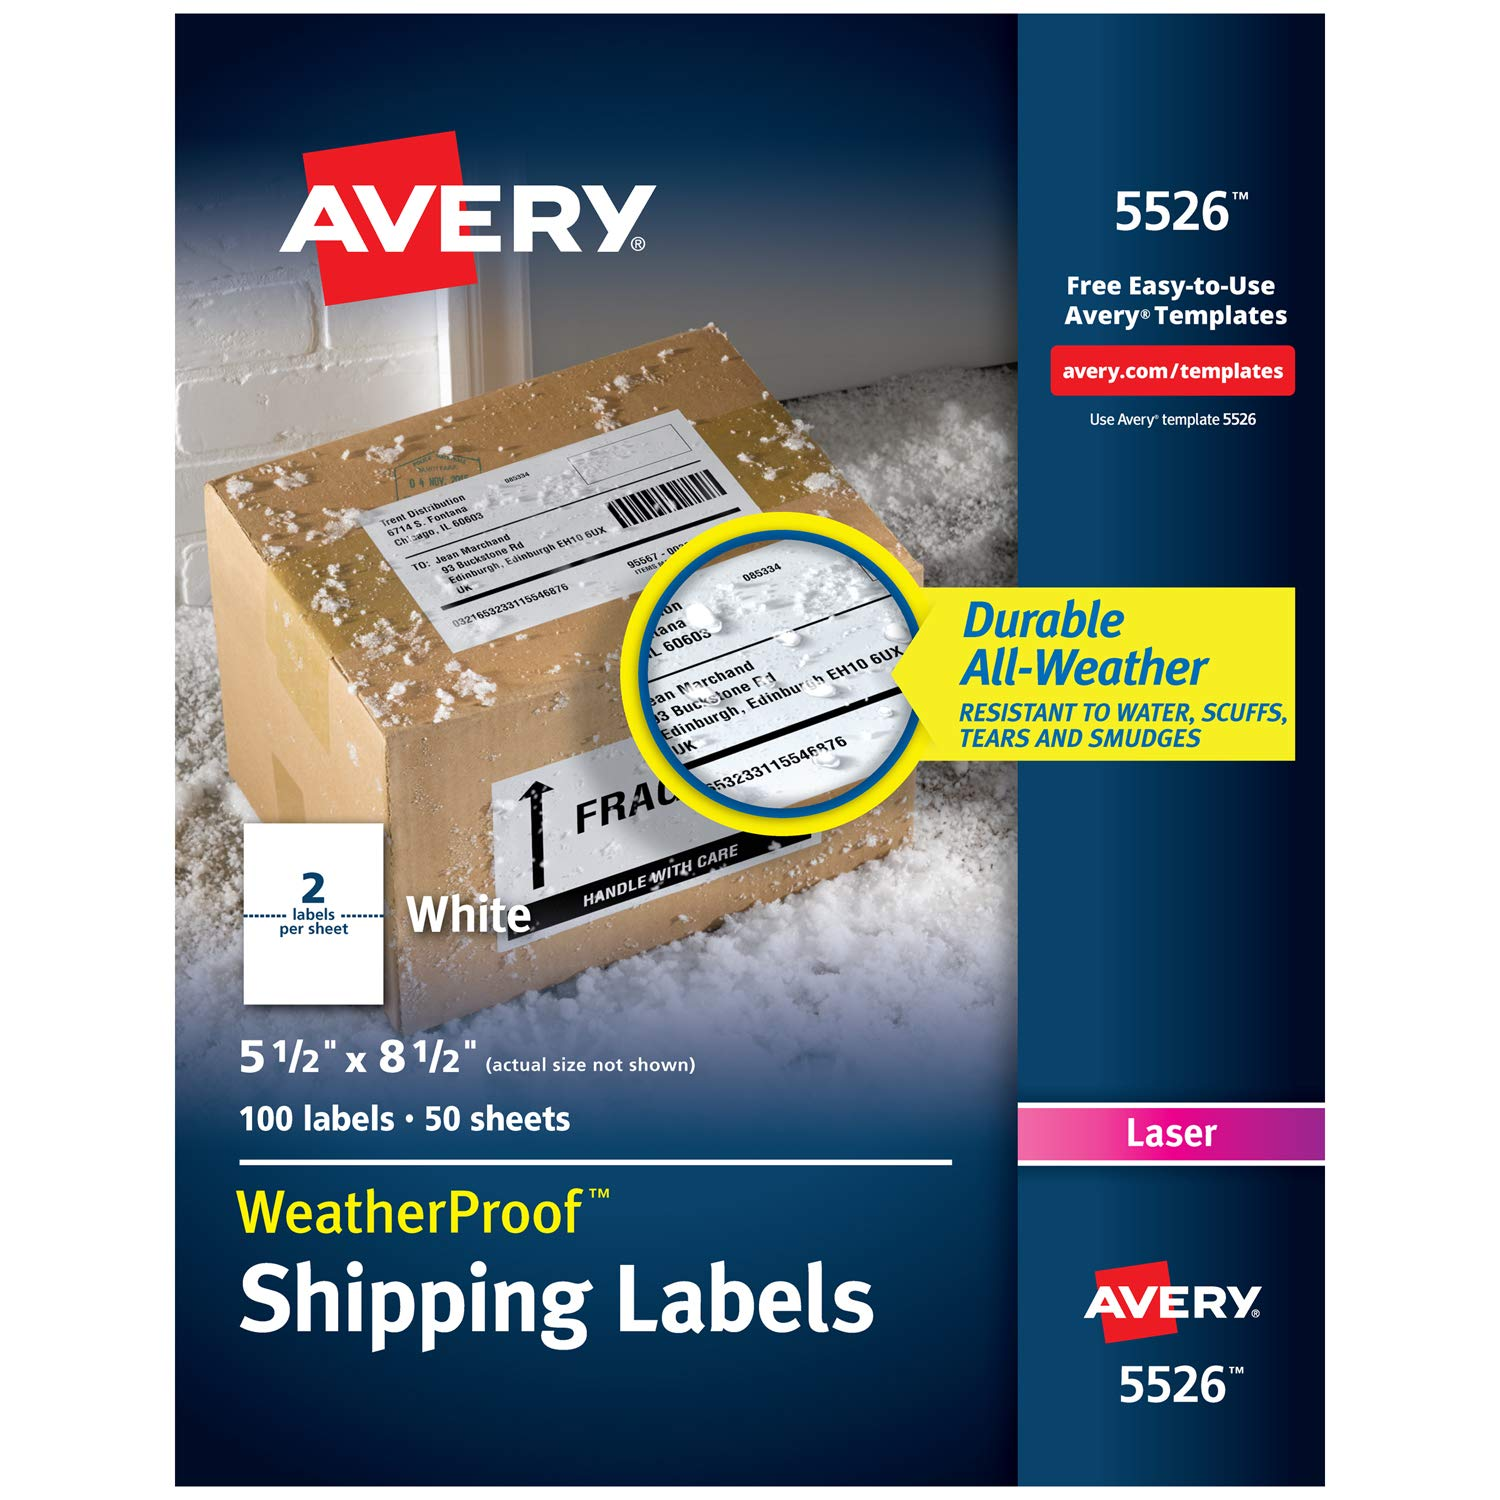 Avery WeatherProof Mailing Labels with TrueBlock Technology for Laser Printers 5-1/2'' x 8-1/2'', Box of 100 Labels (5526), White by Avery